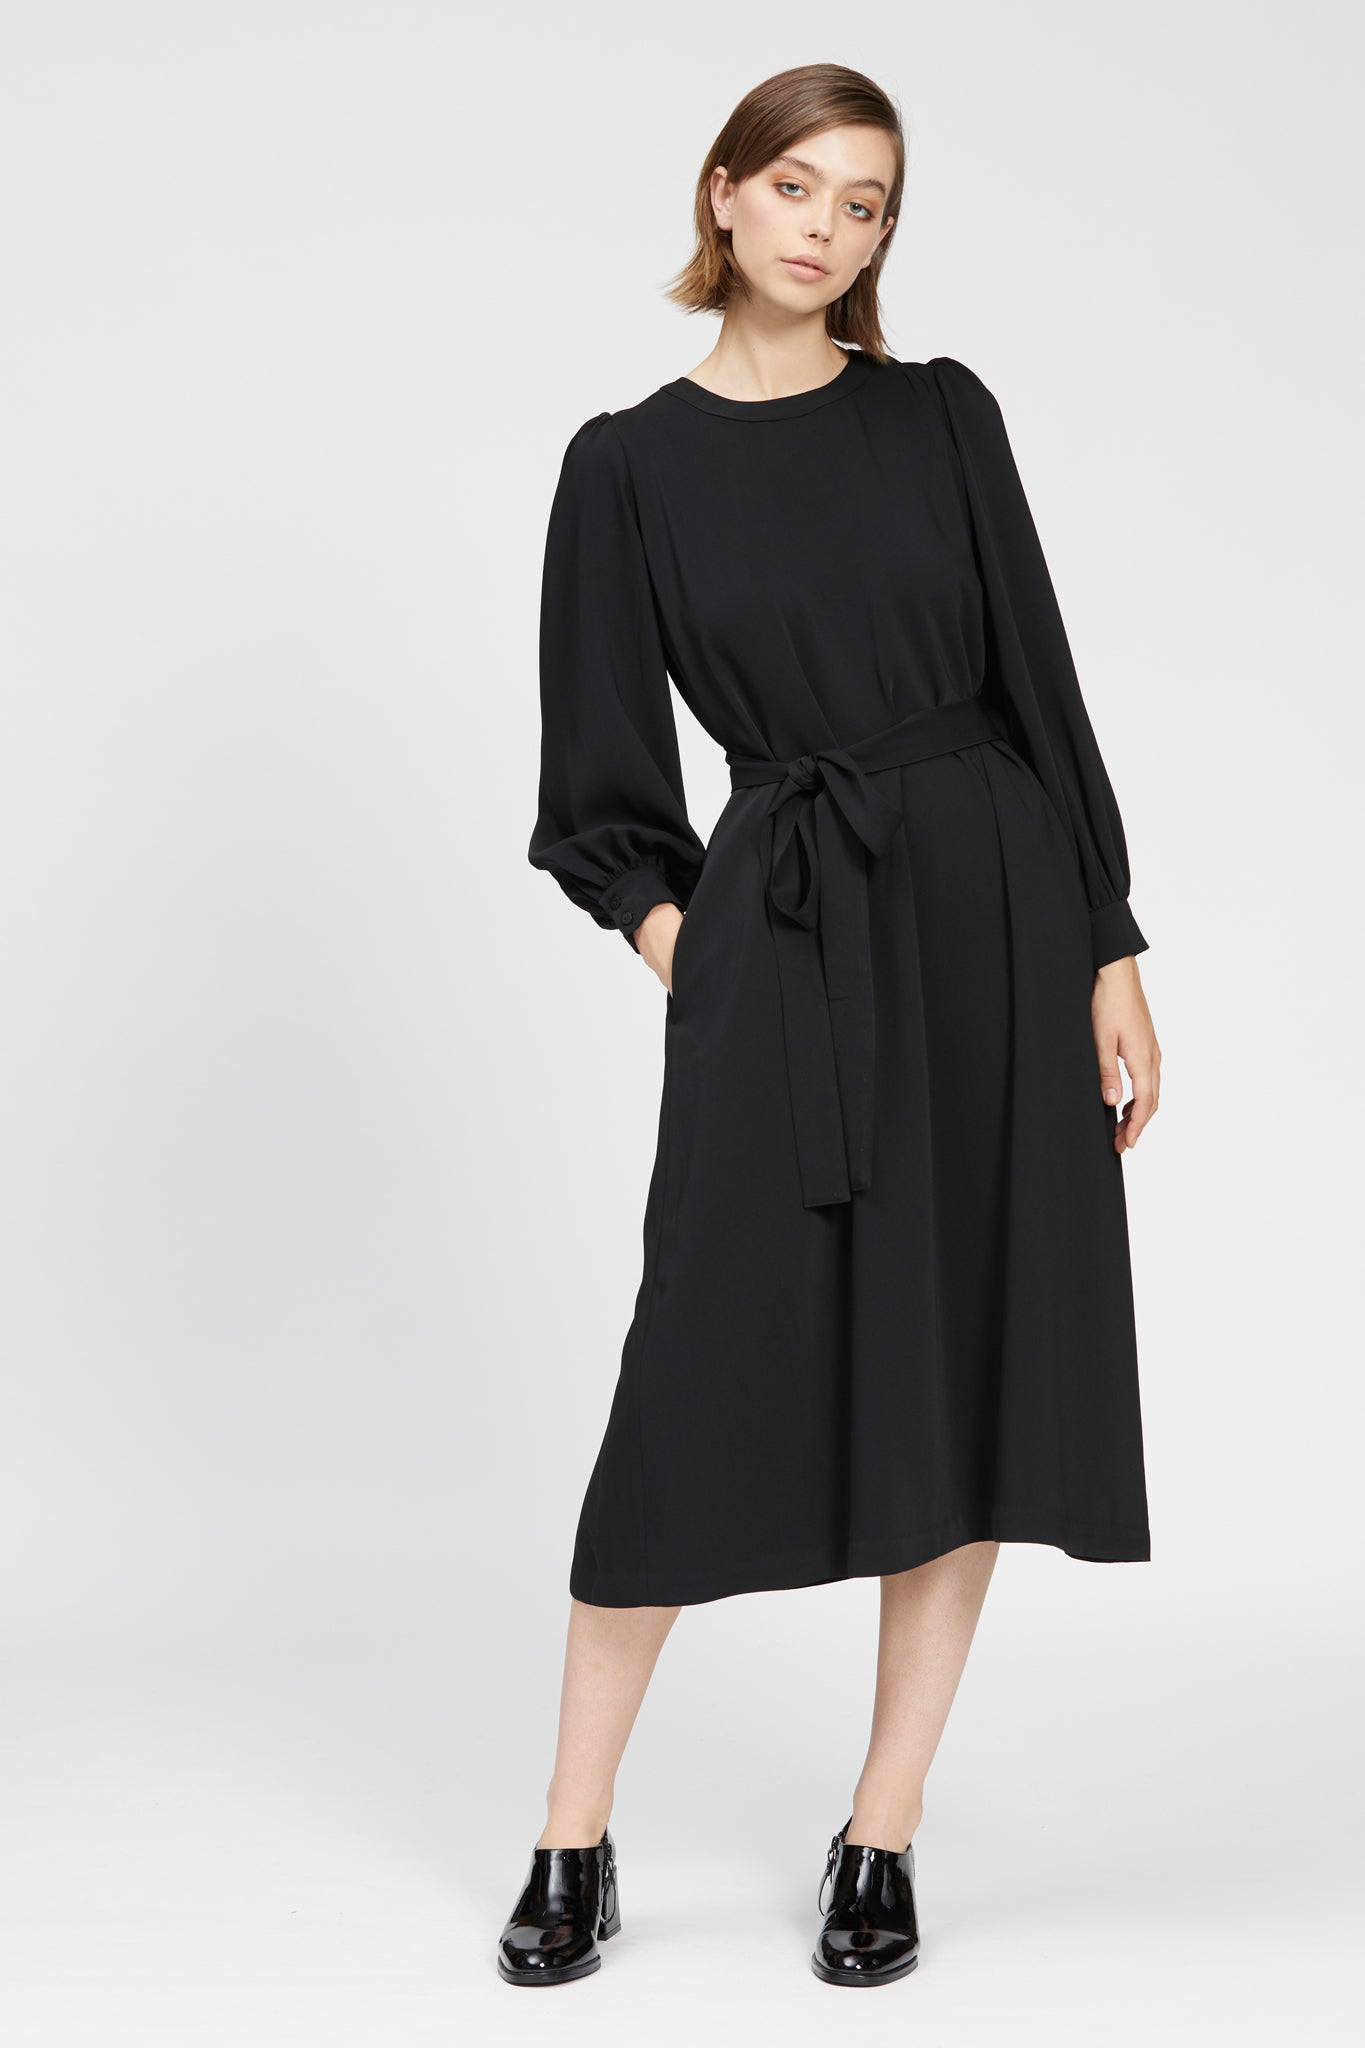 cristallo dress black